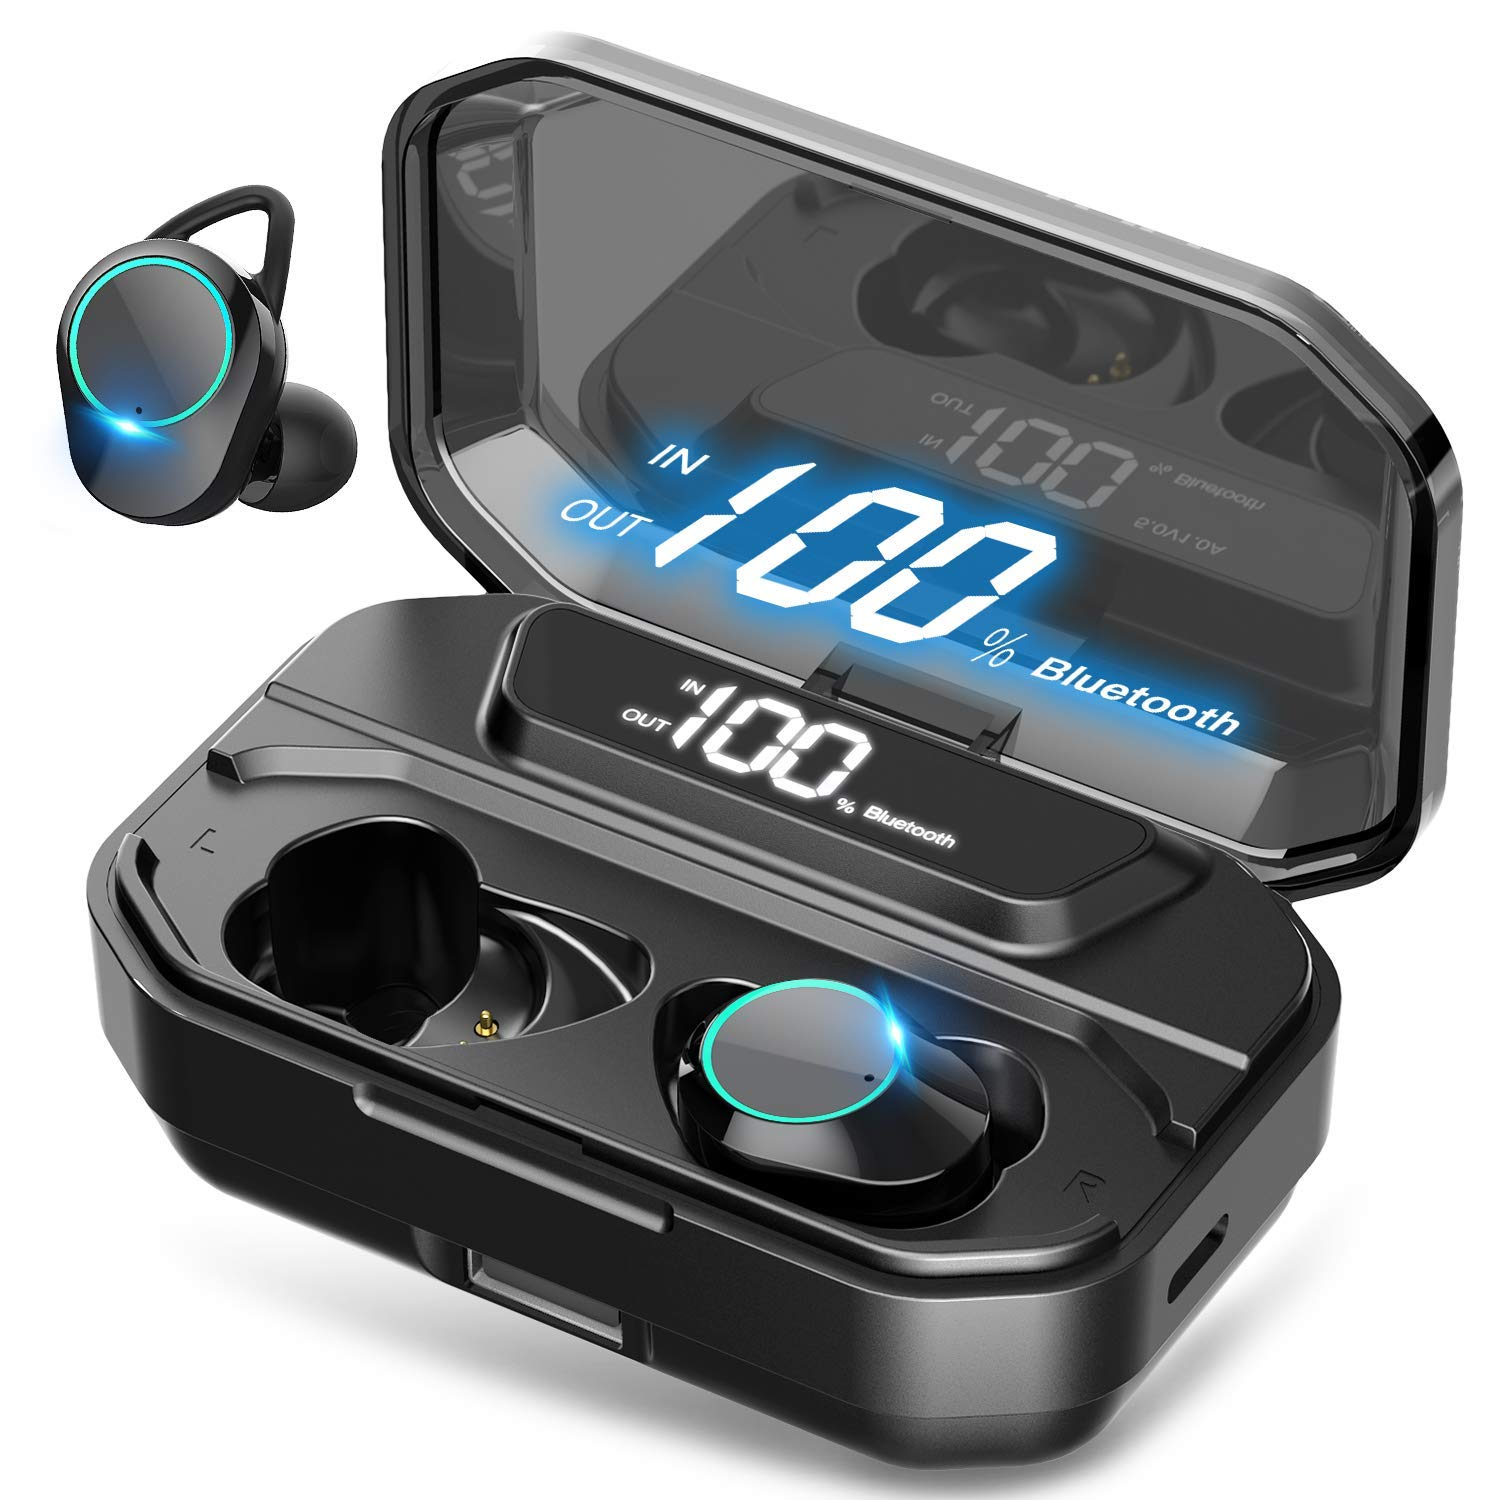 2019 Ultimate True Wireless Earbuds Bluetooth 5.0 Headphones, IPX7 Waterproof Earphones for Sports, 110H Playtime w 3300mAh Charging Case, 3D Stereo Audio Touch Control in-Ear Headset w Mic